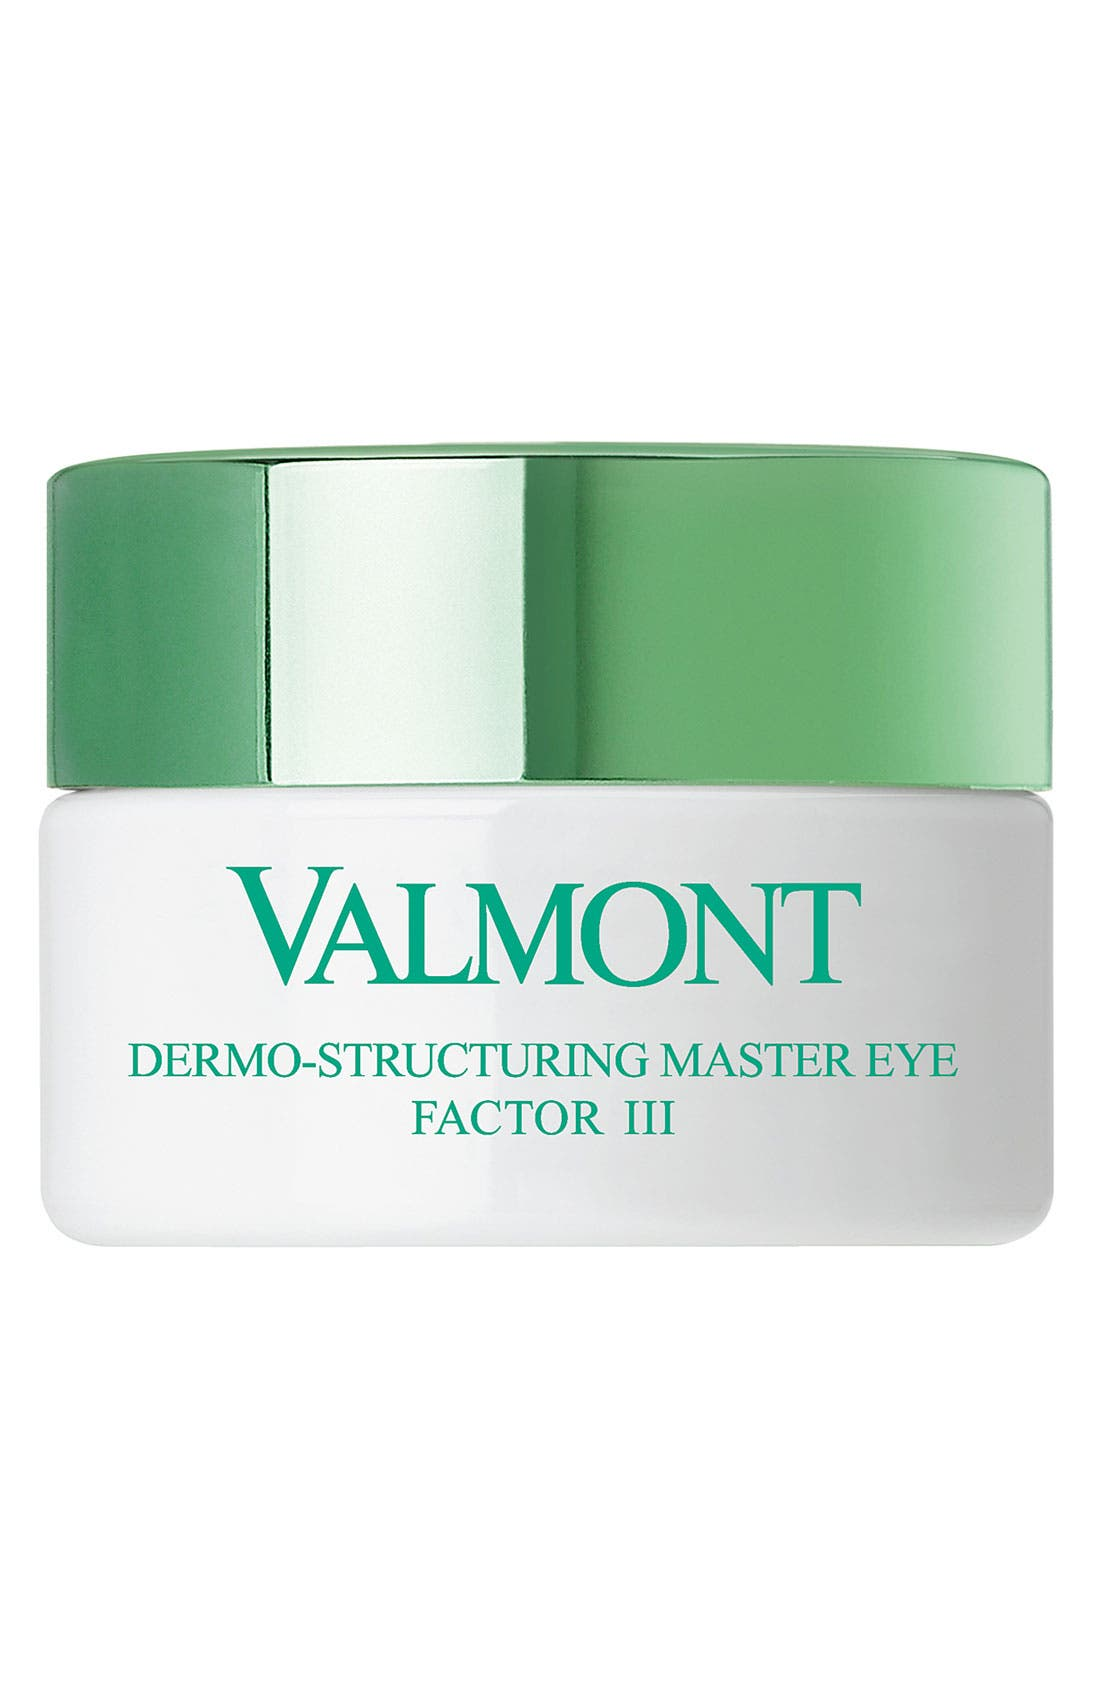 VALMONT 'Dermo-Structuring Master Eye Factor III' Cream, Main, color, 000